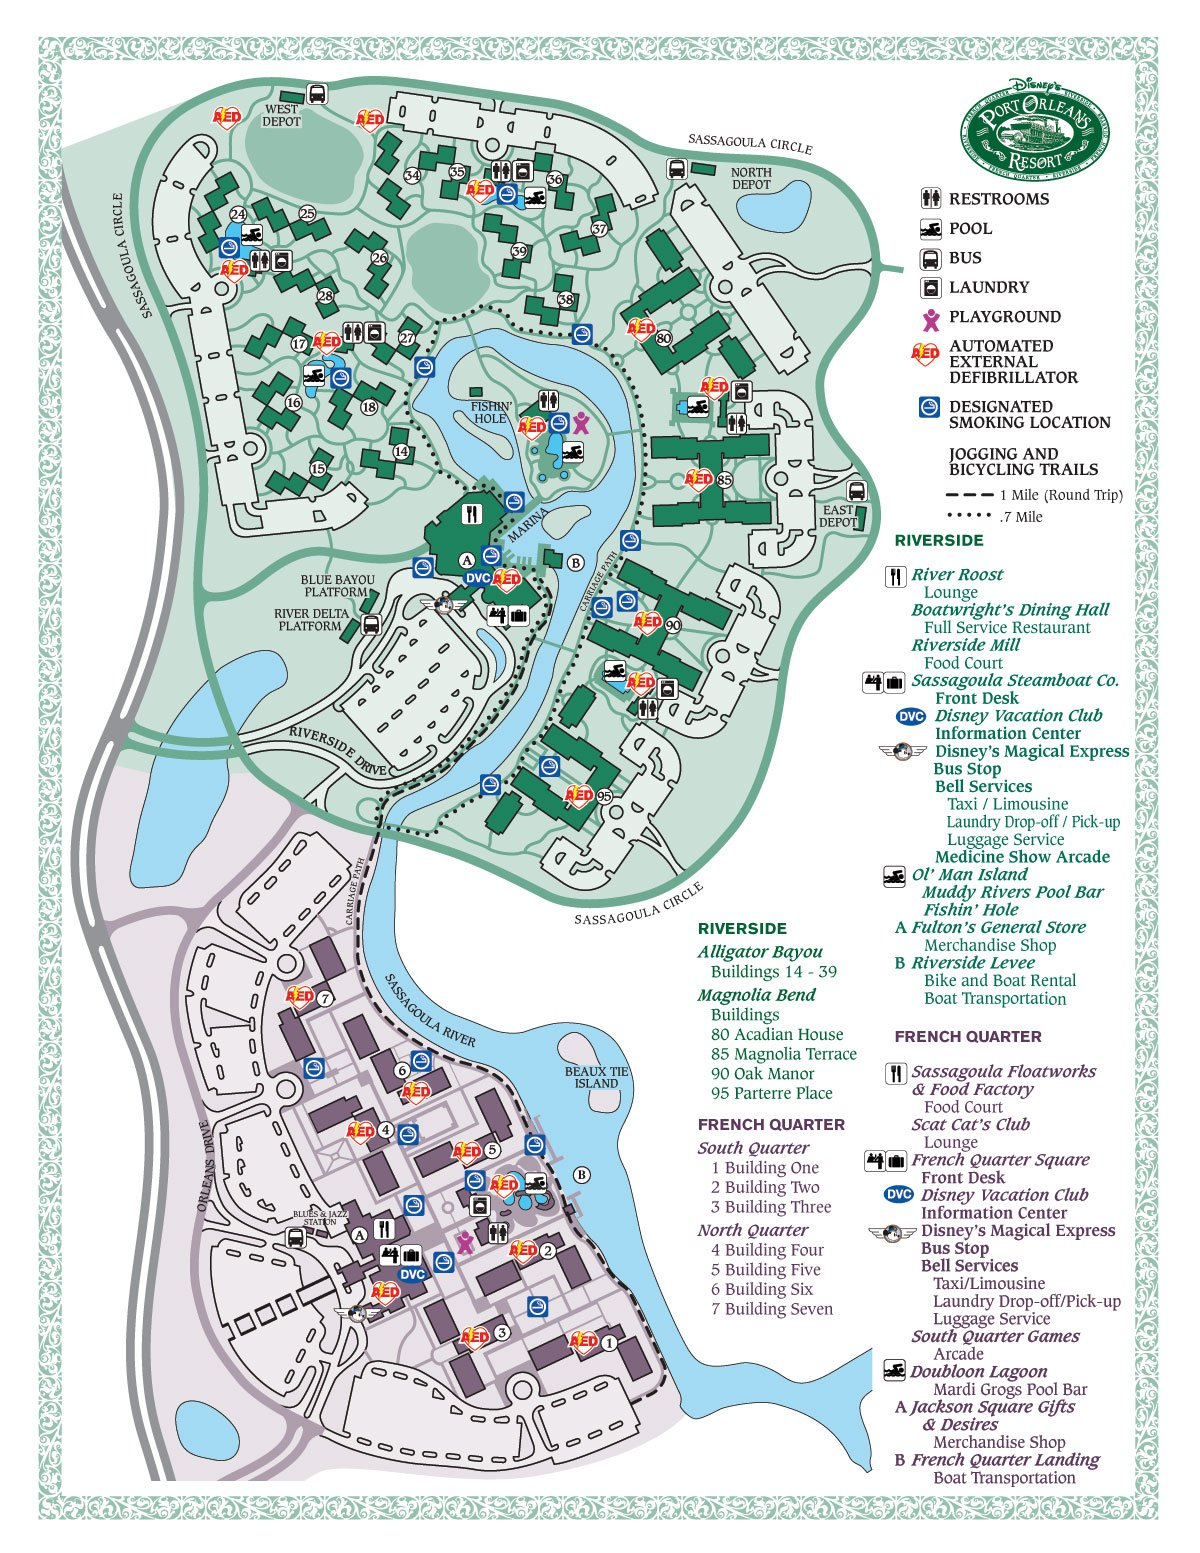 Disney's Port Orleans French Quarter map - wdwinfo.com on midtown manhattan hotels map, french quarter district map, large french quarter map, hotels near grand canyon map, french quarter street map, riverside hotels map, pittsburgh hotels map, french quarter property map, french quarter interactive map, new orleans hotels map, michigan avenue hotels map, st. martin french quarter map, downtown cleveland hotels map, charleston hotels map, avondale hotels map, denver hotels map, french quarter restaurant map, fisherman's wharf hotels map, french quarter walking map, best french quarter map,